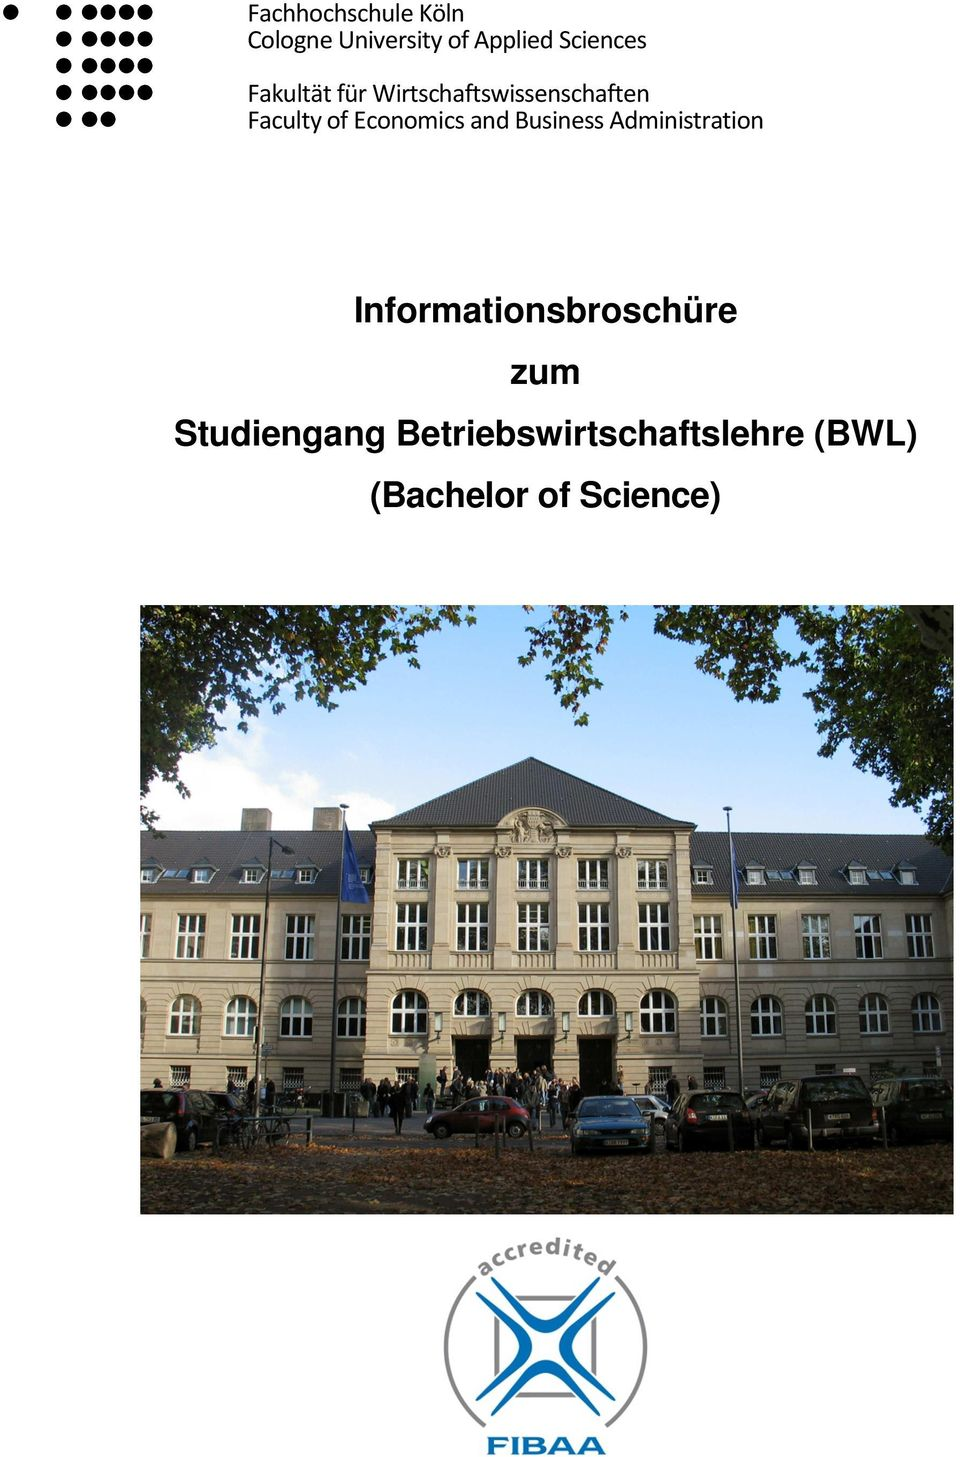 Wirtschaftswissenschaften Faculty of Economics and Business